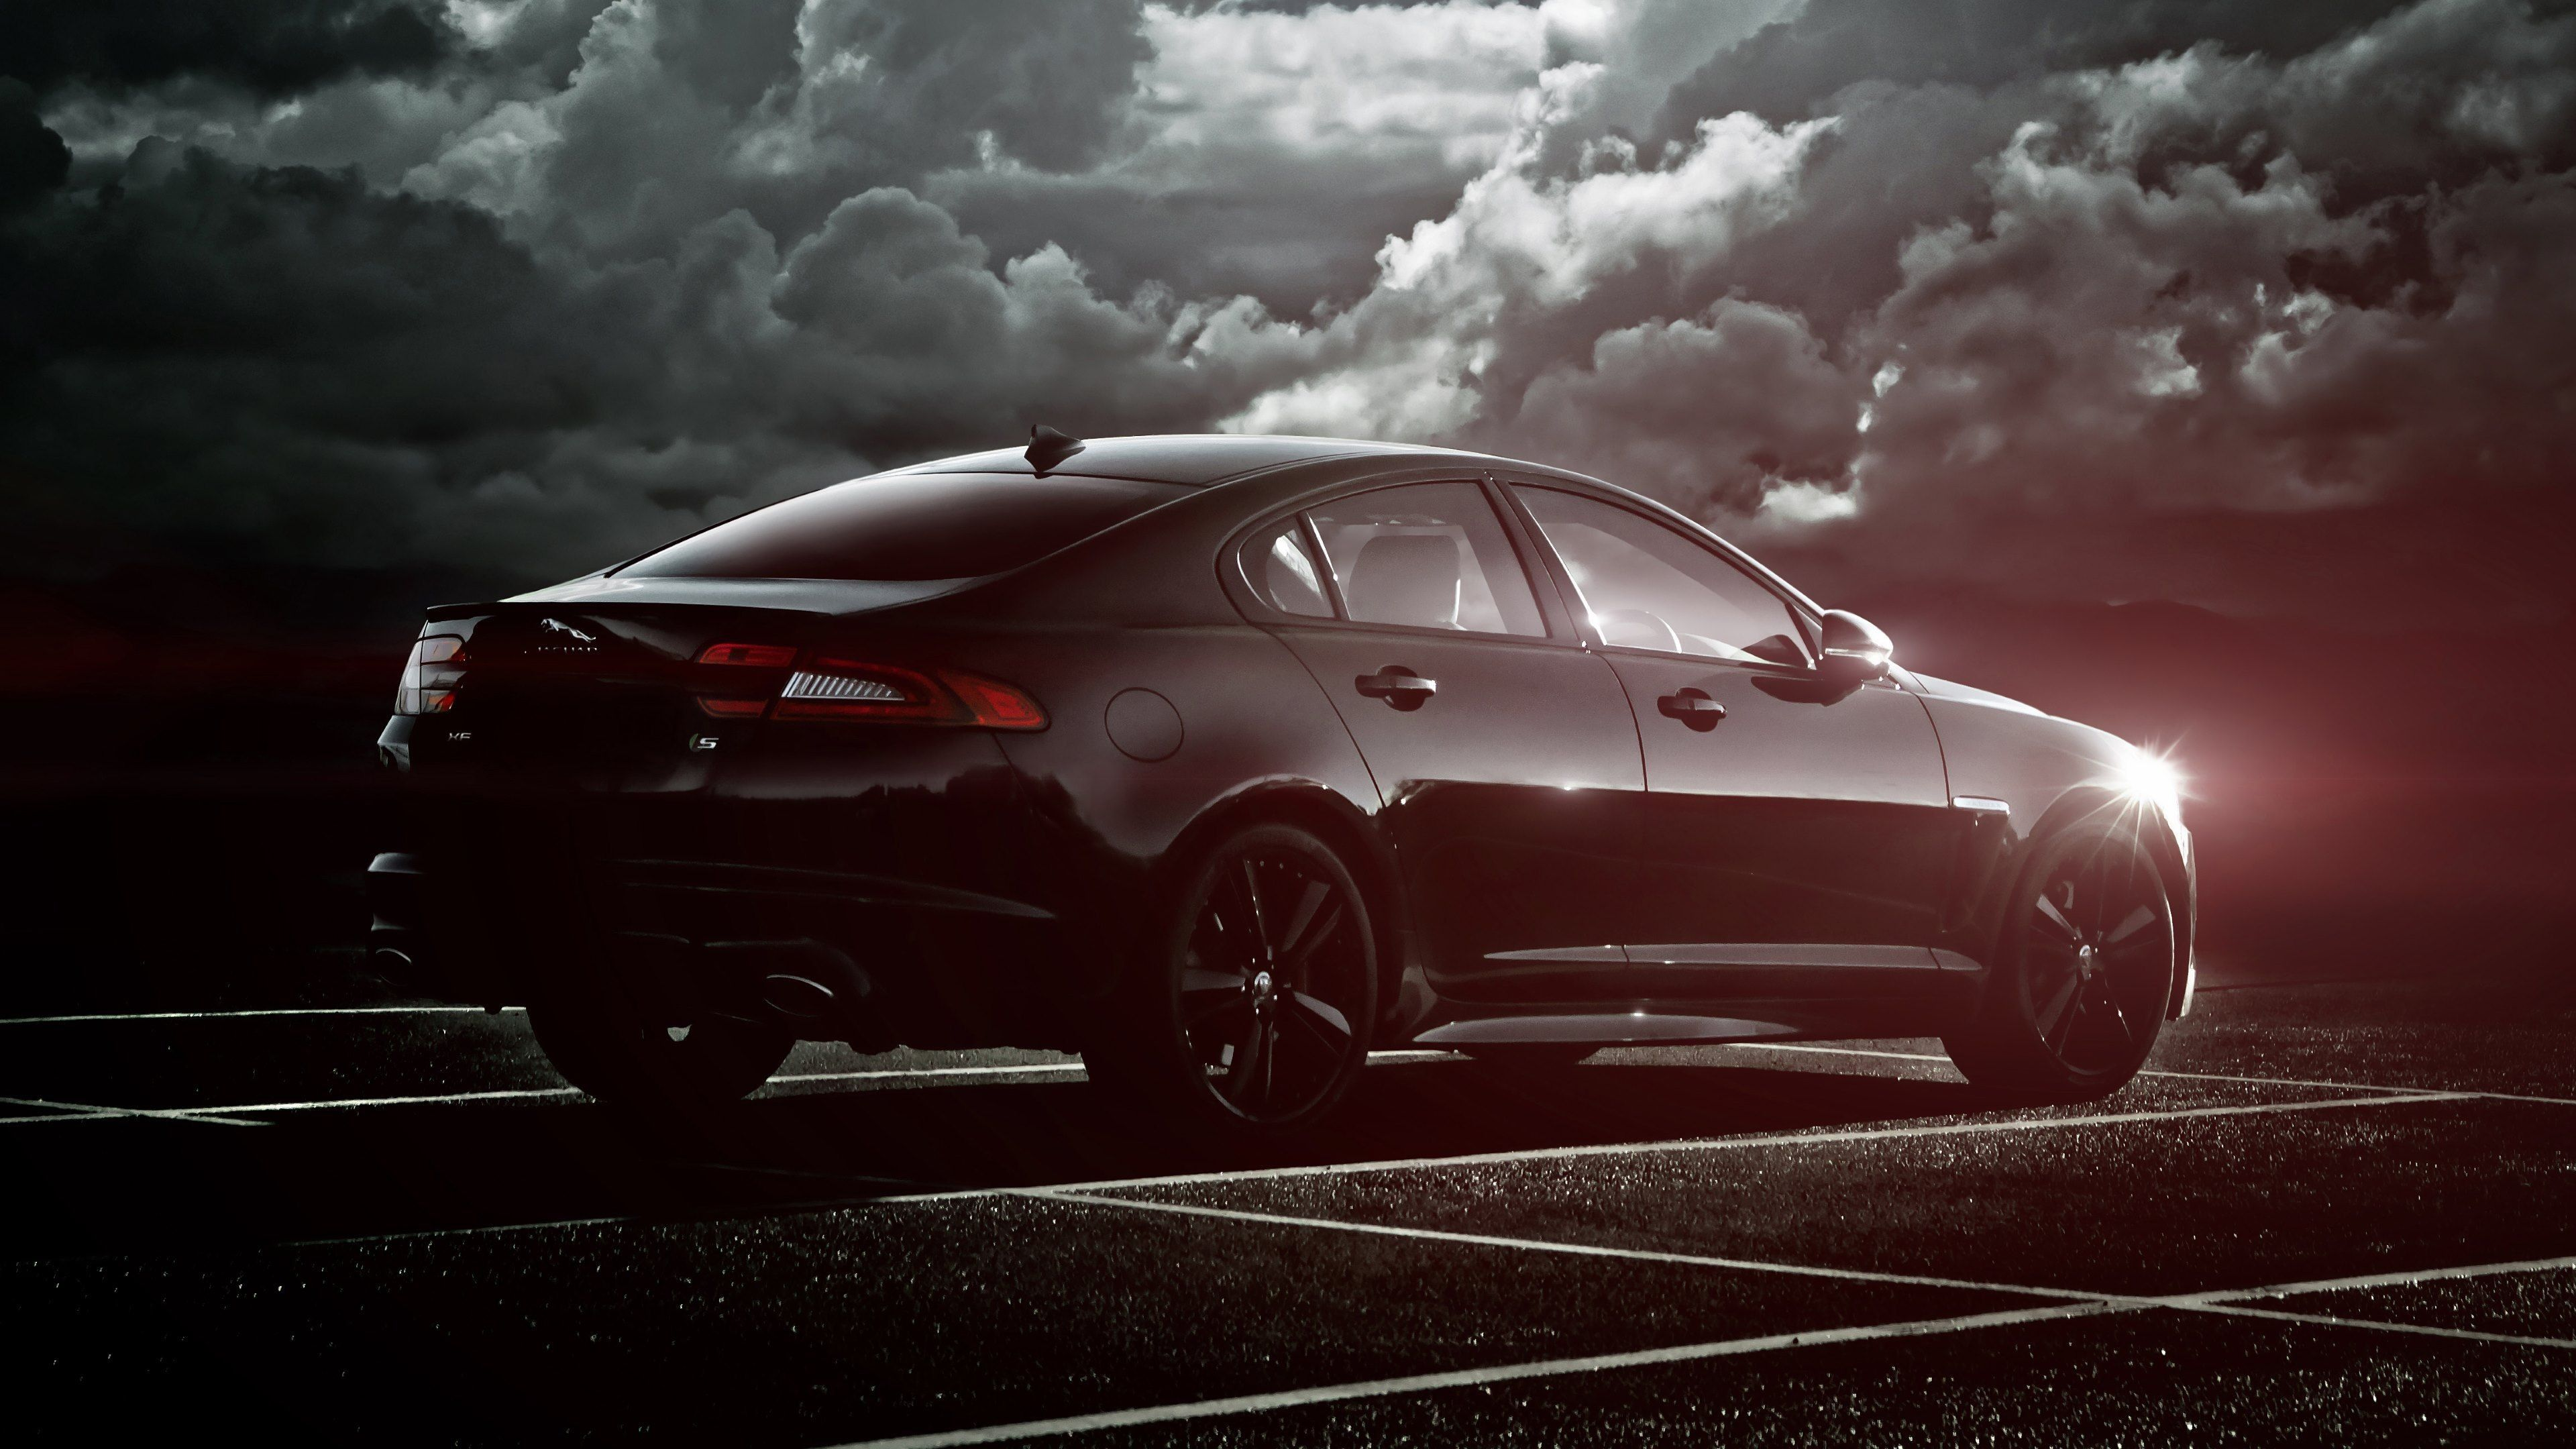 Fresh Jaguar Xf Hd Wallpapers 1080p Di 2020